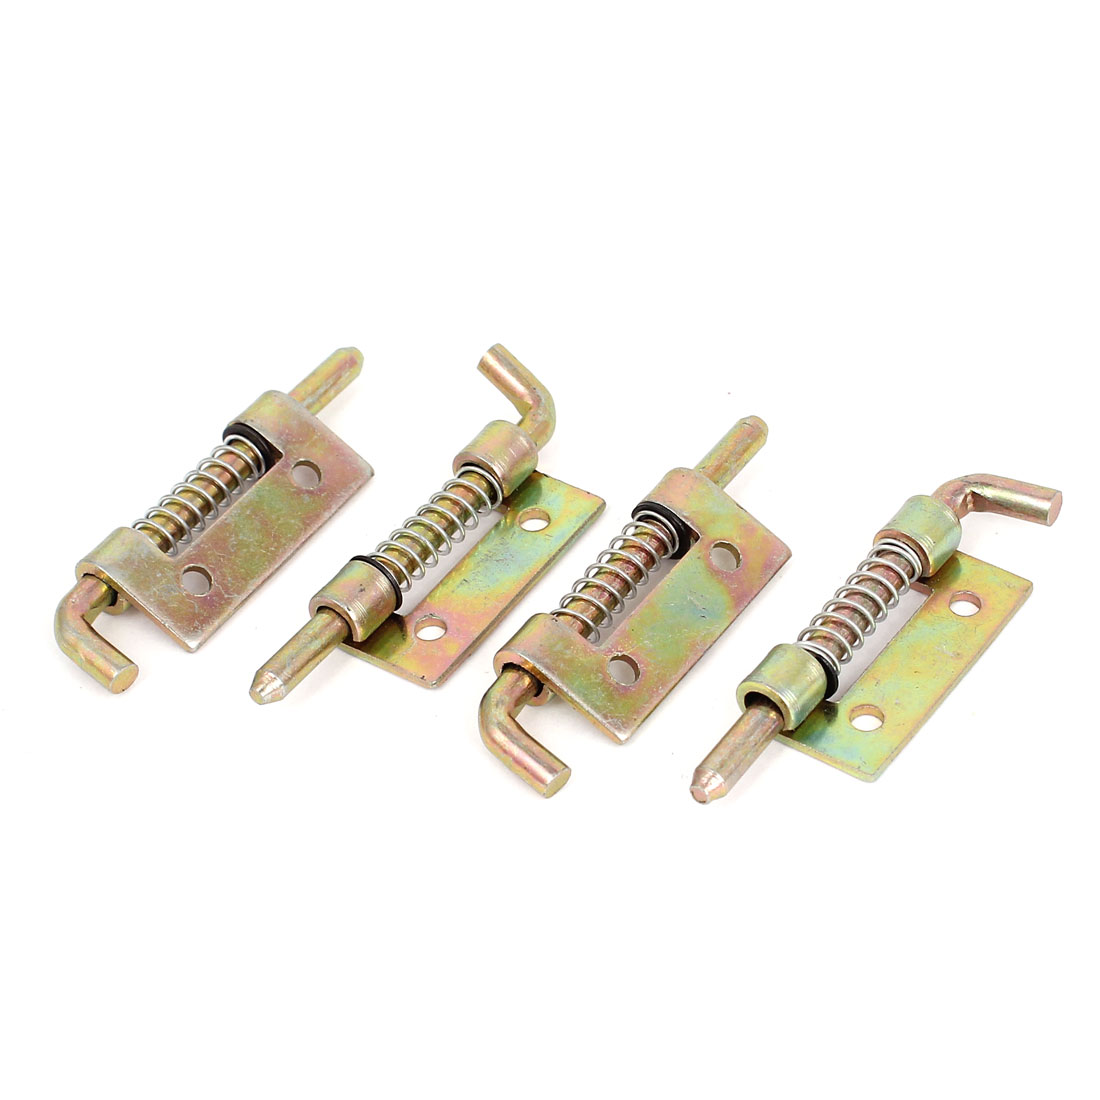 4pcs Cabinet Door Hinges Spring Loaded Metal Left Barrel Bolt Latch 54mm Long